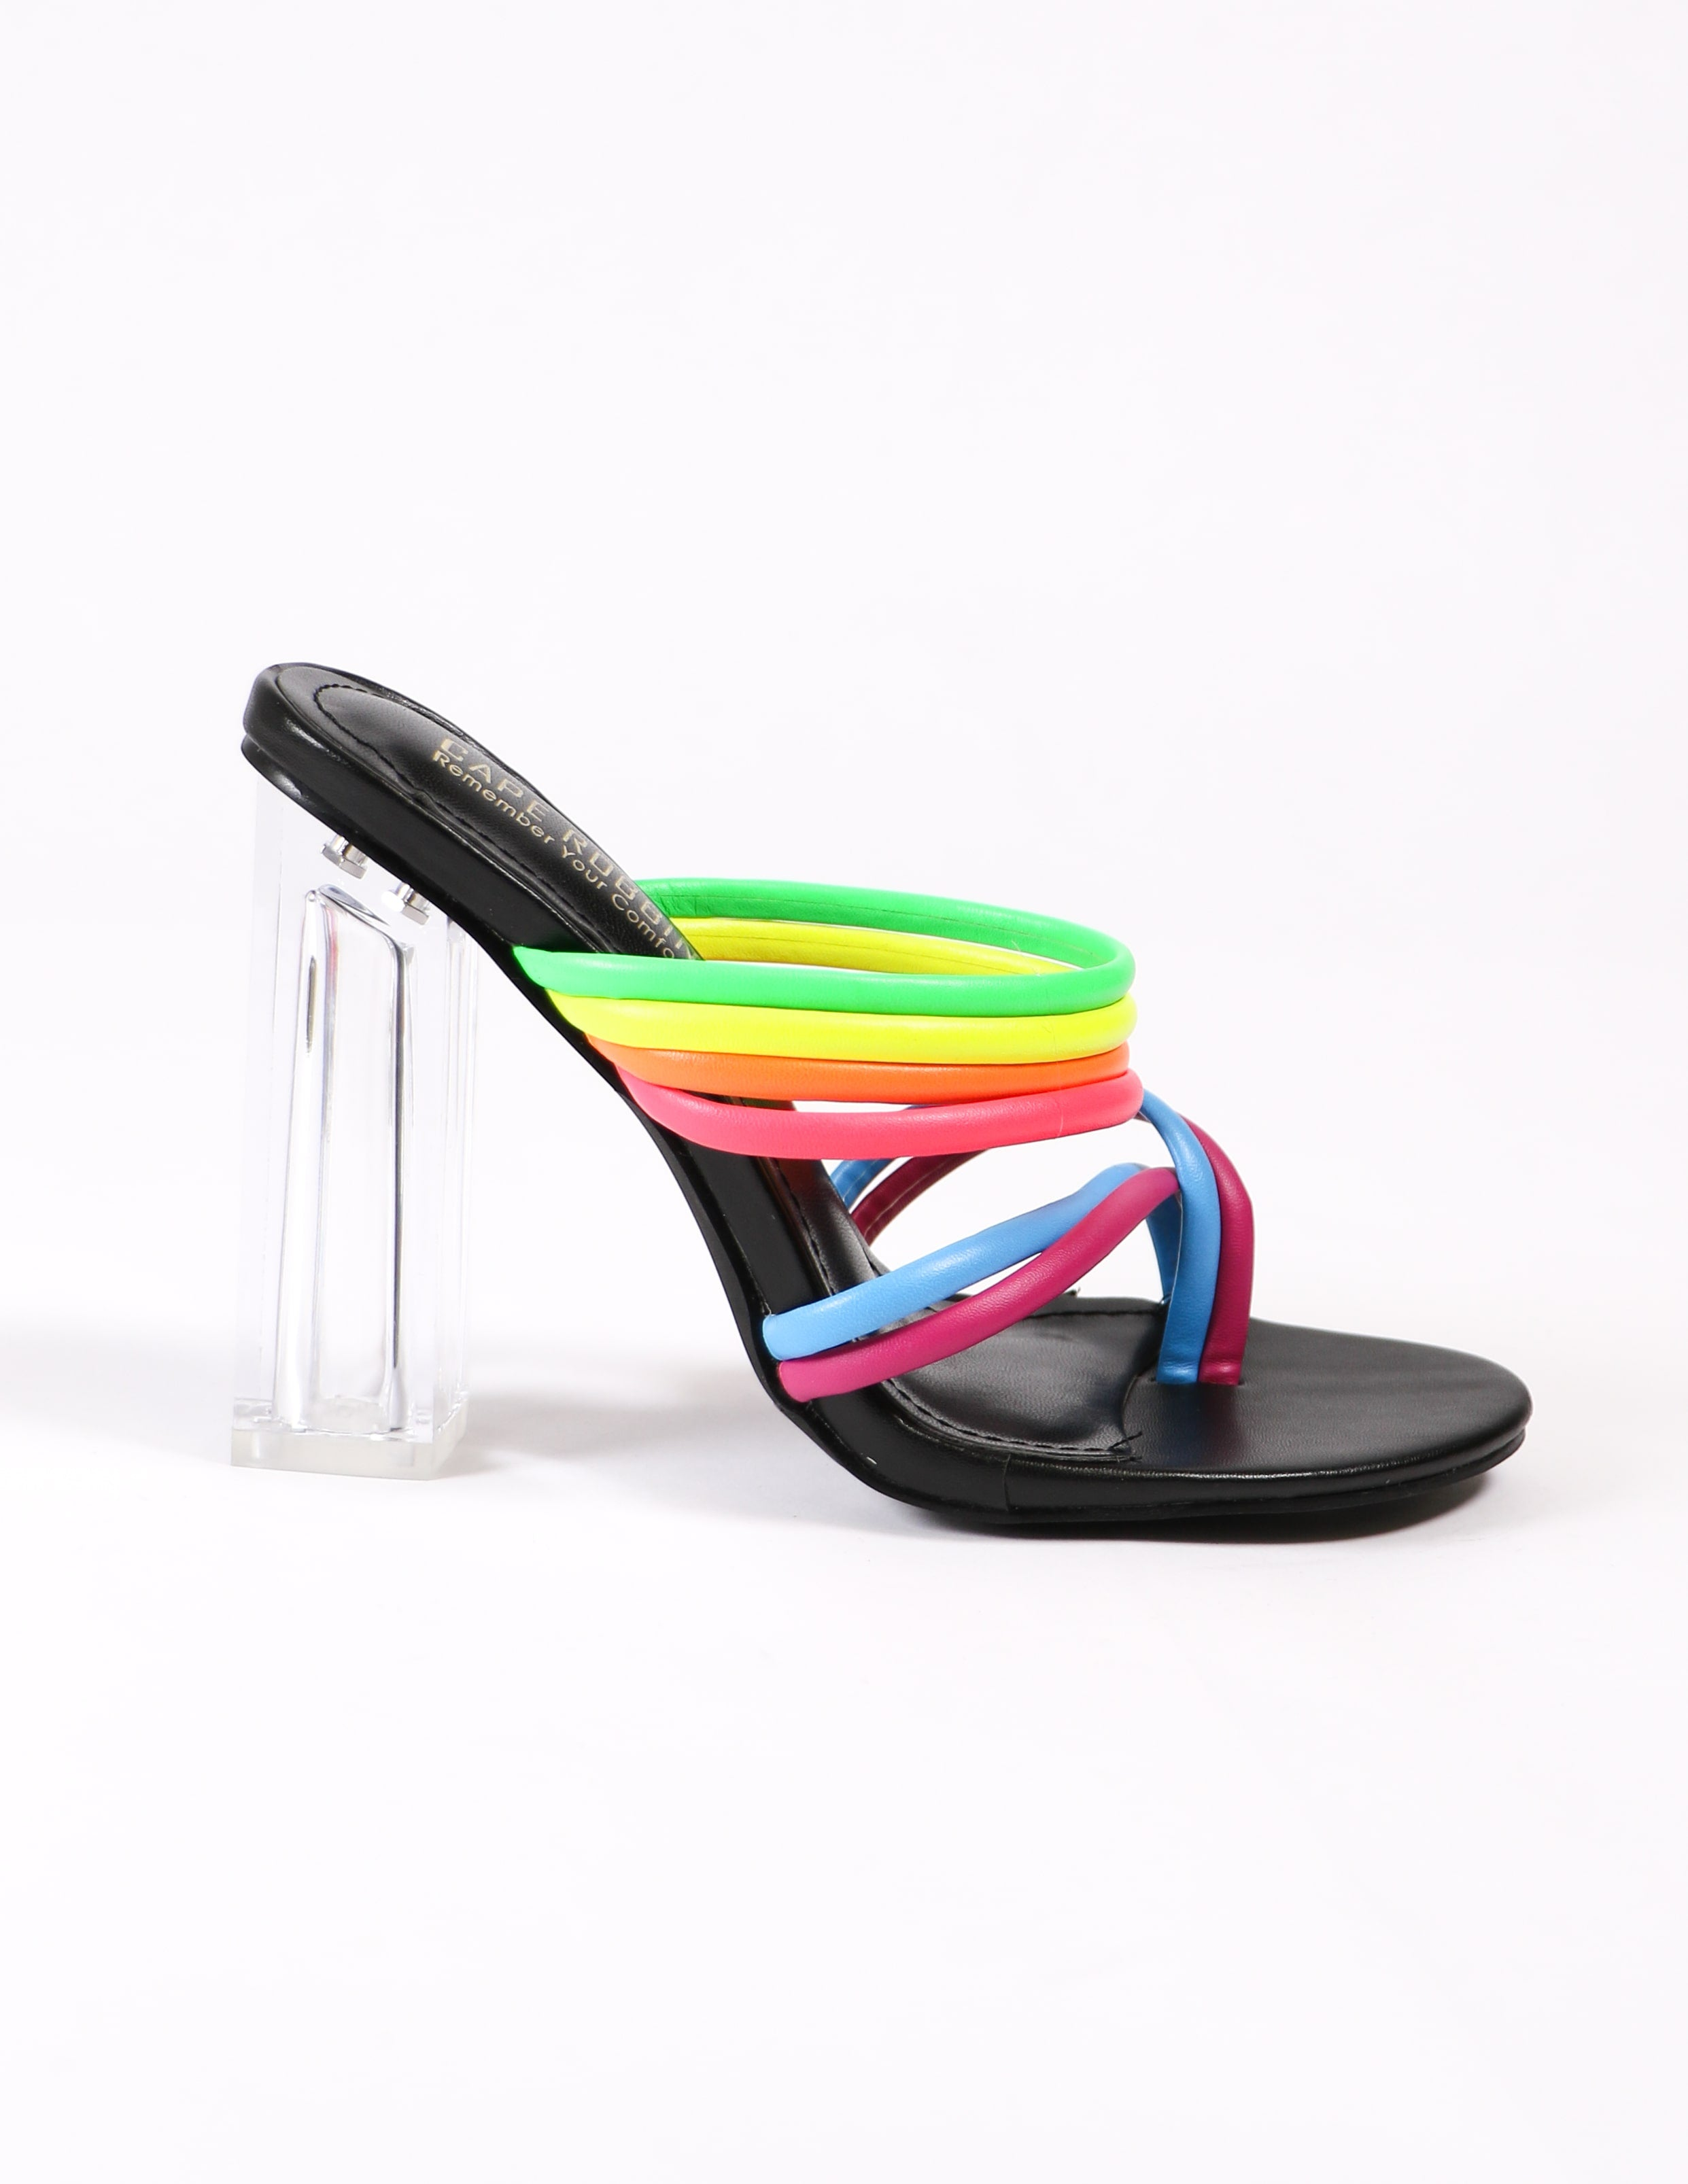 side of the black and rainbow leading rainbow heels on white background